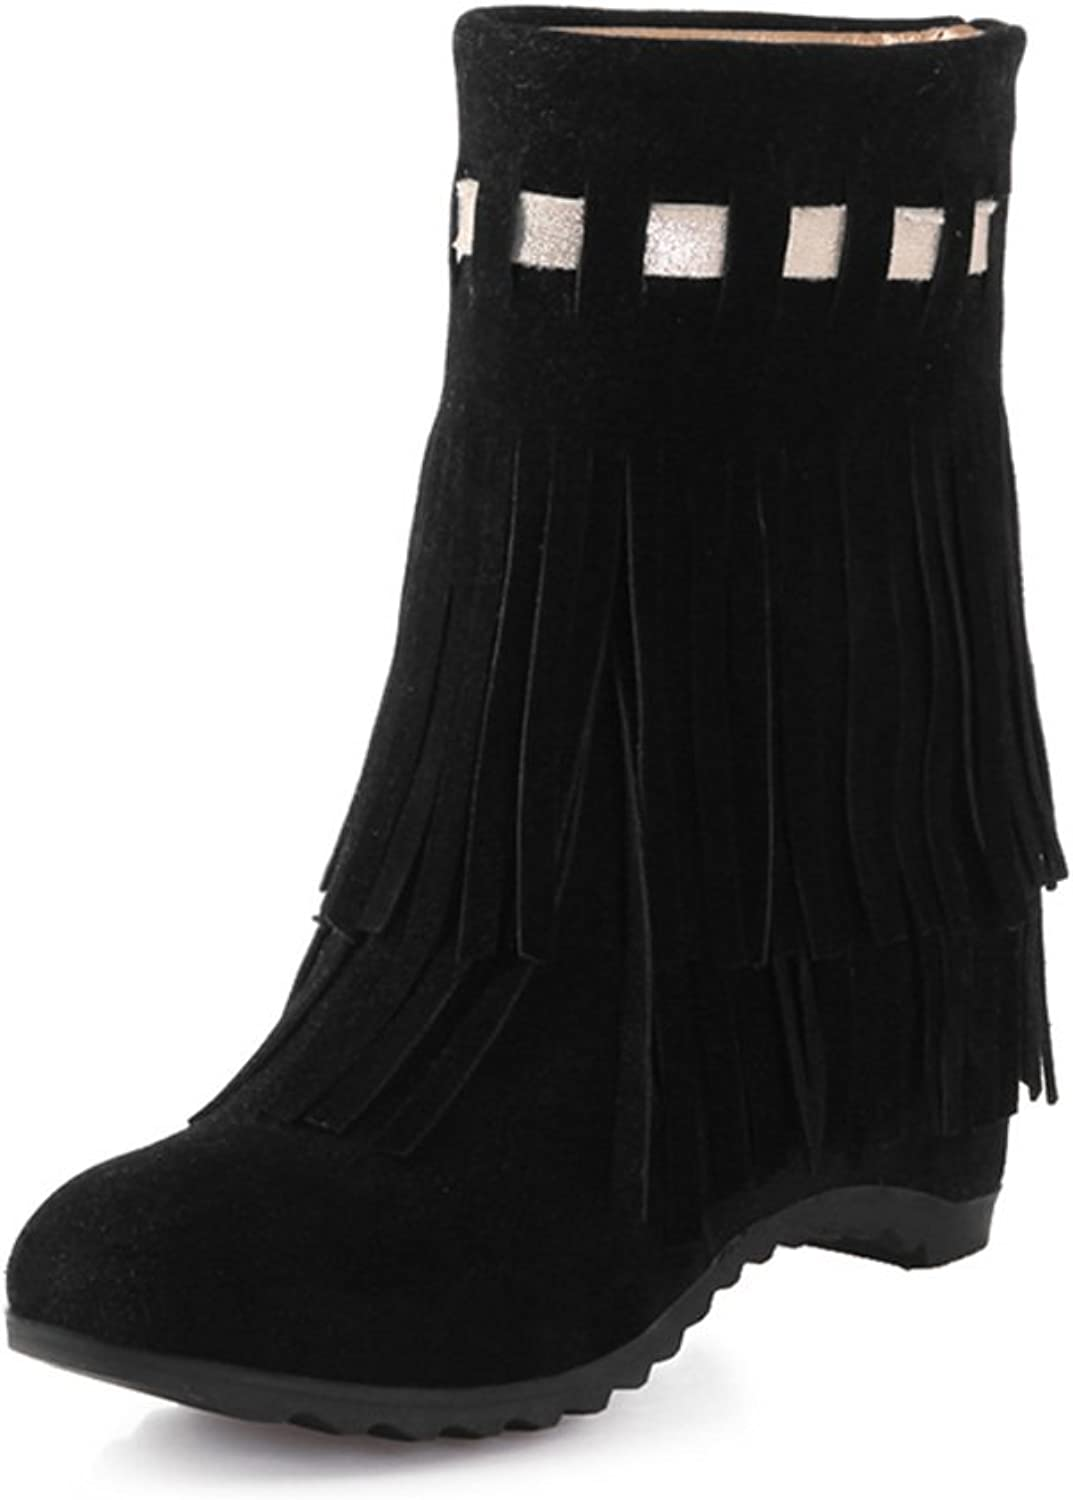 RHFDVGDS Winter and Cashmere Women's Boots Tassel Boots Flat high Boots in The UK high Heel Suede shoes